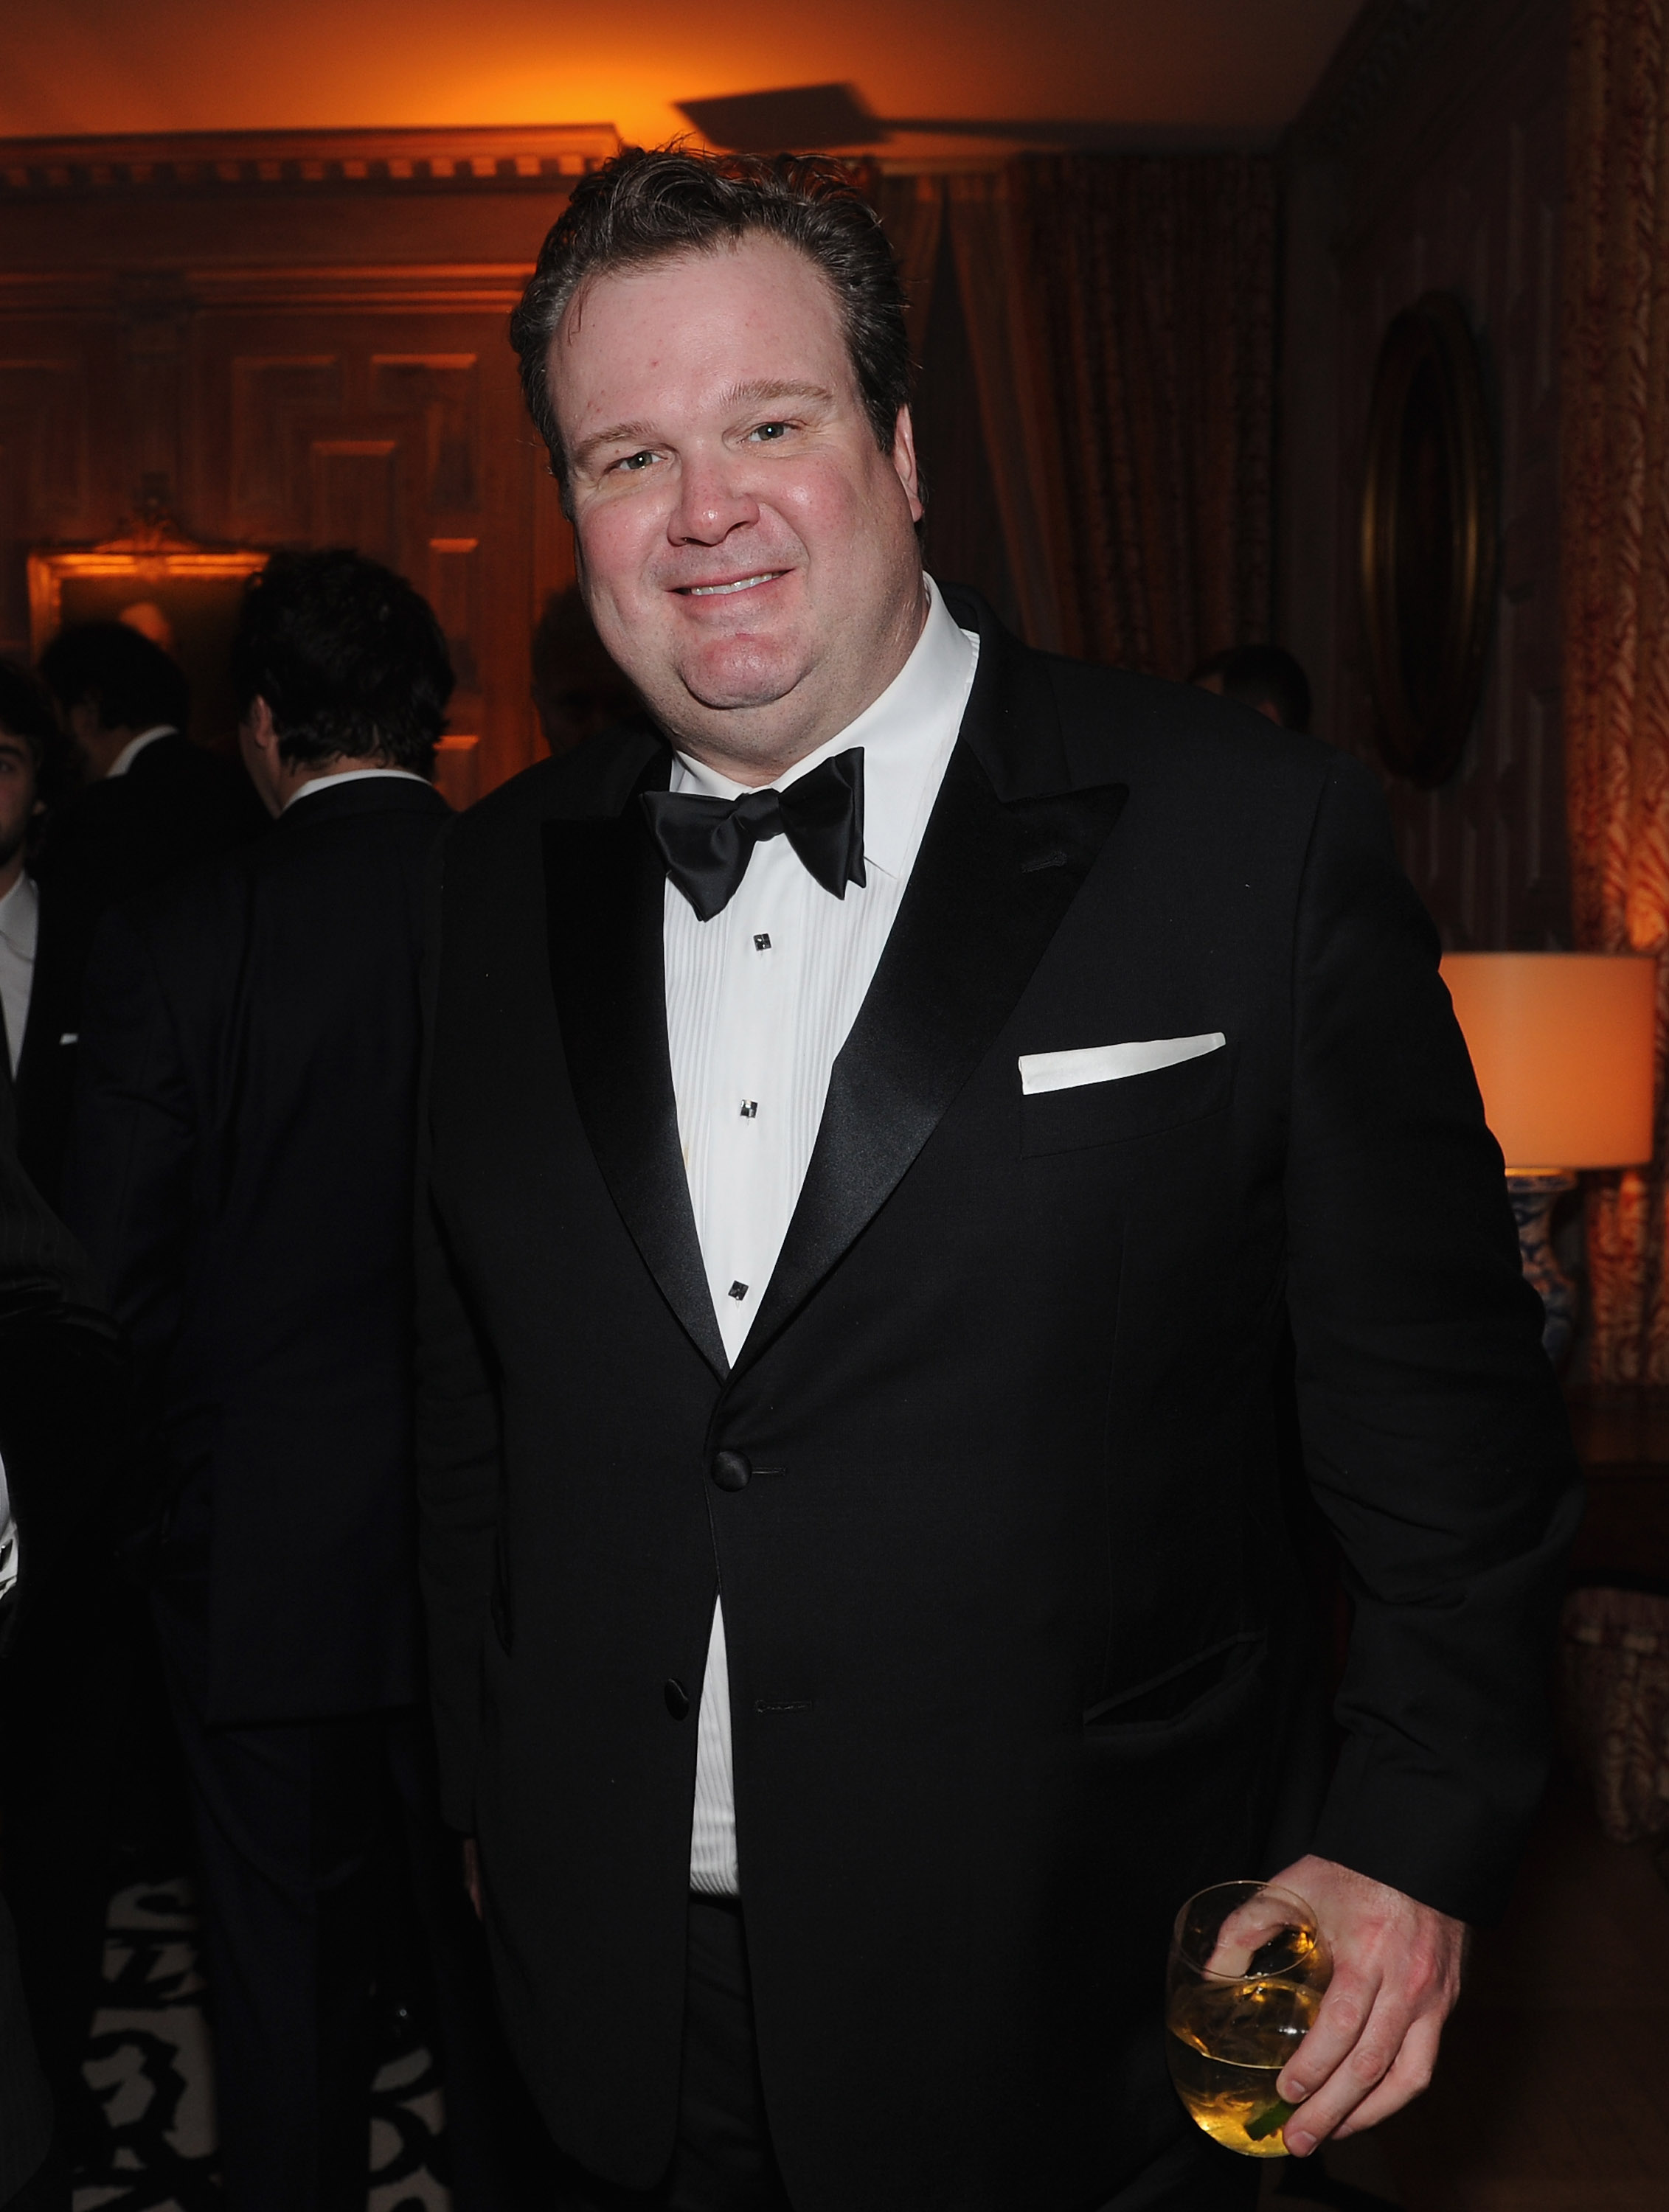 Eric stonestreet arrived at the white house correspondant for Eric stonestreet house